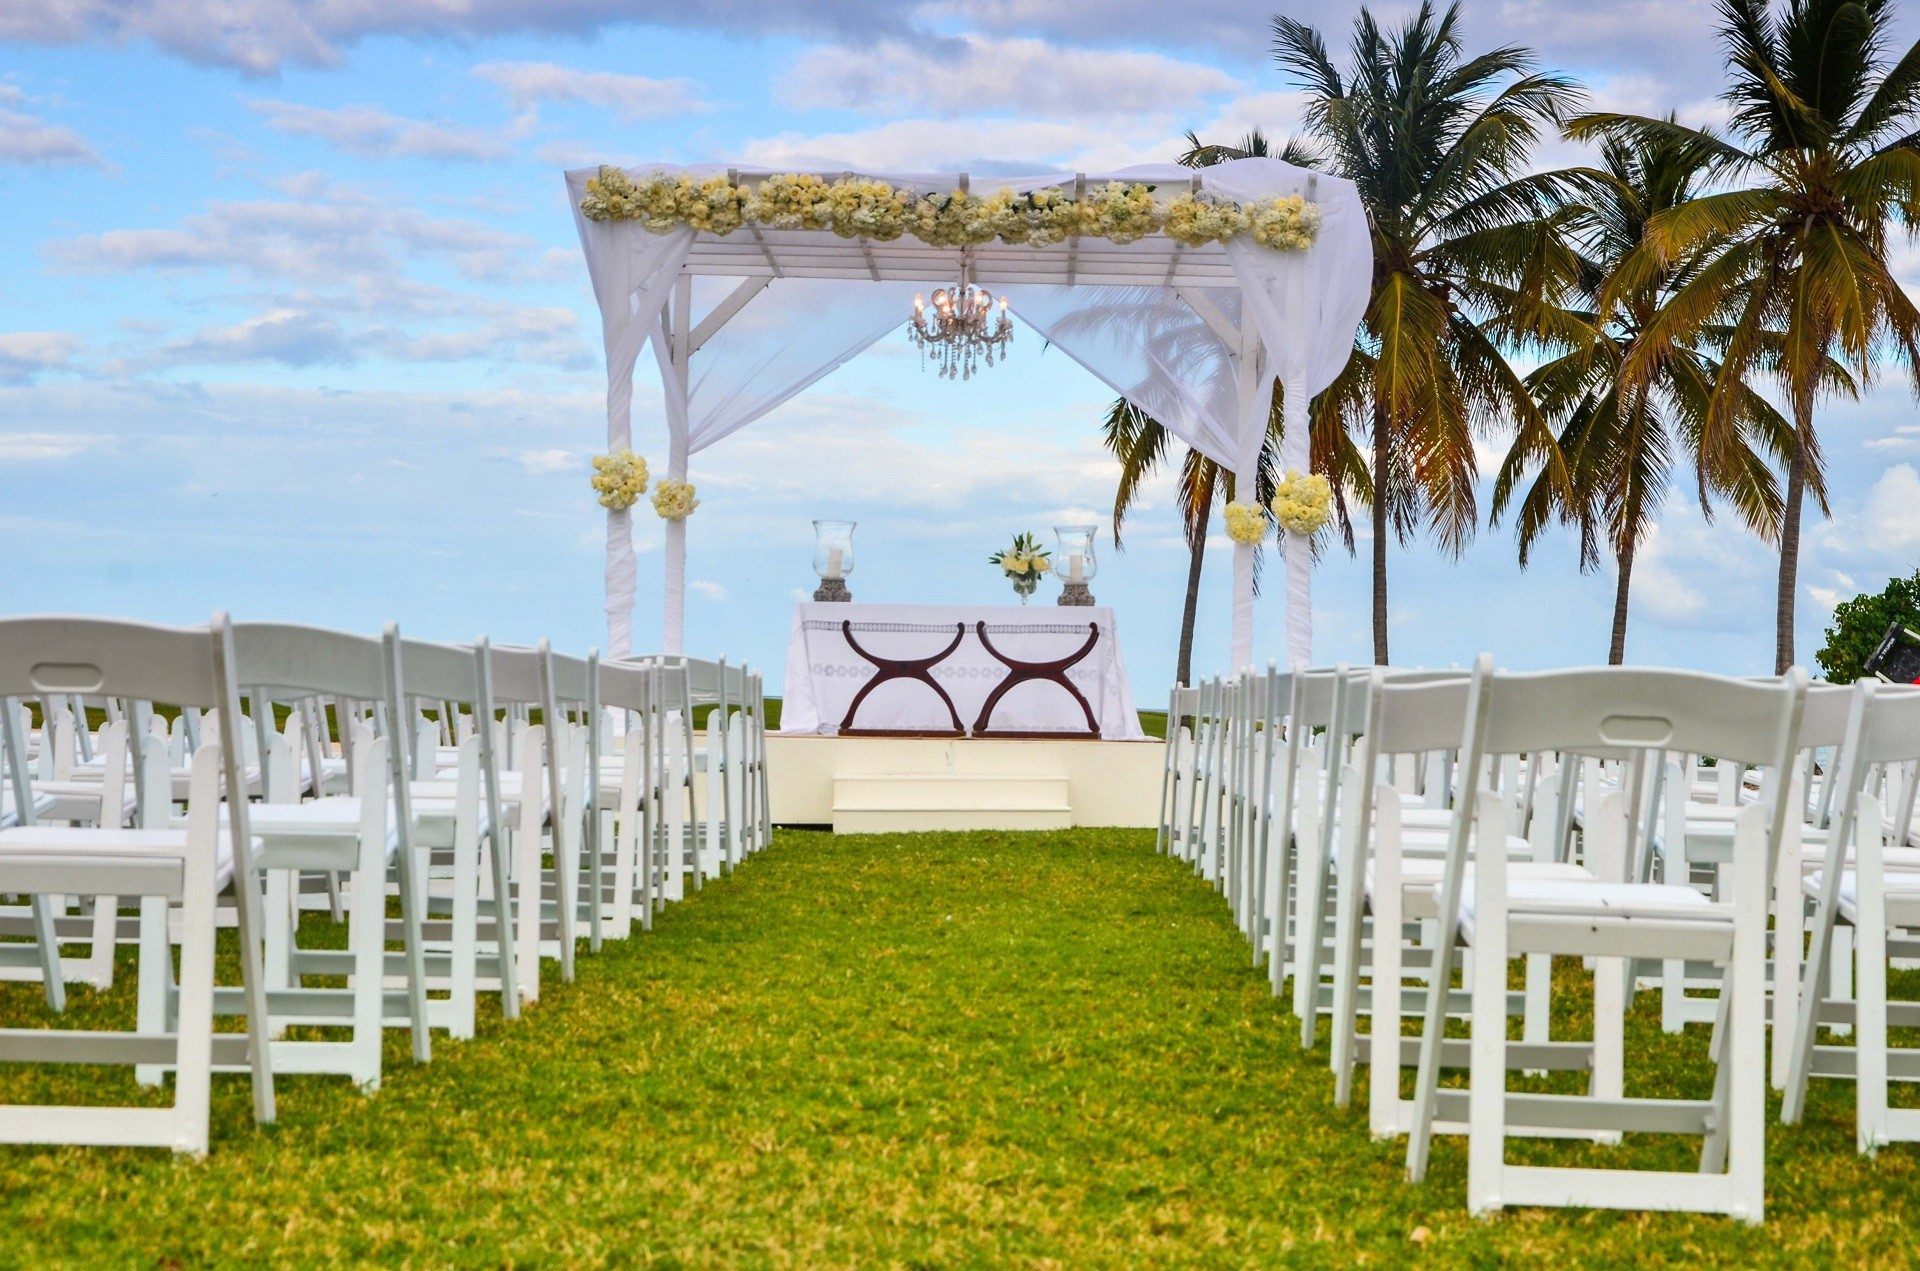 Wedding requirements in Punta Cana, Dominican Republic